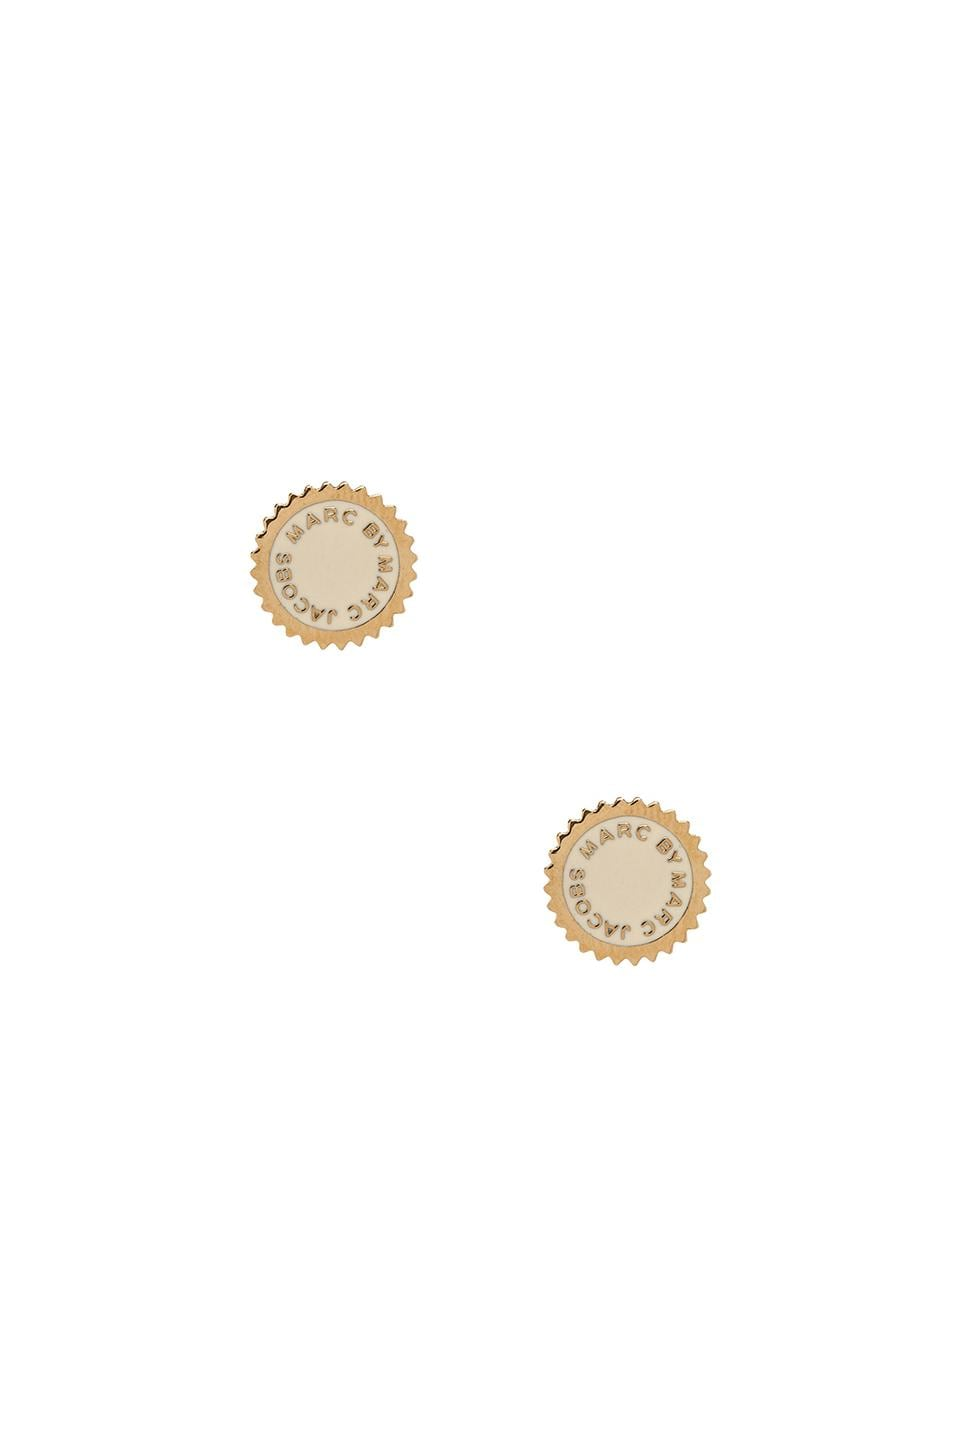 Marc by Marc Jacobs New Classic Marc Saw Tooth Enamel Disc Studs in Creme